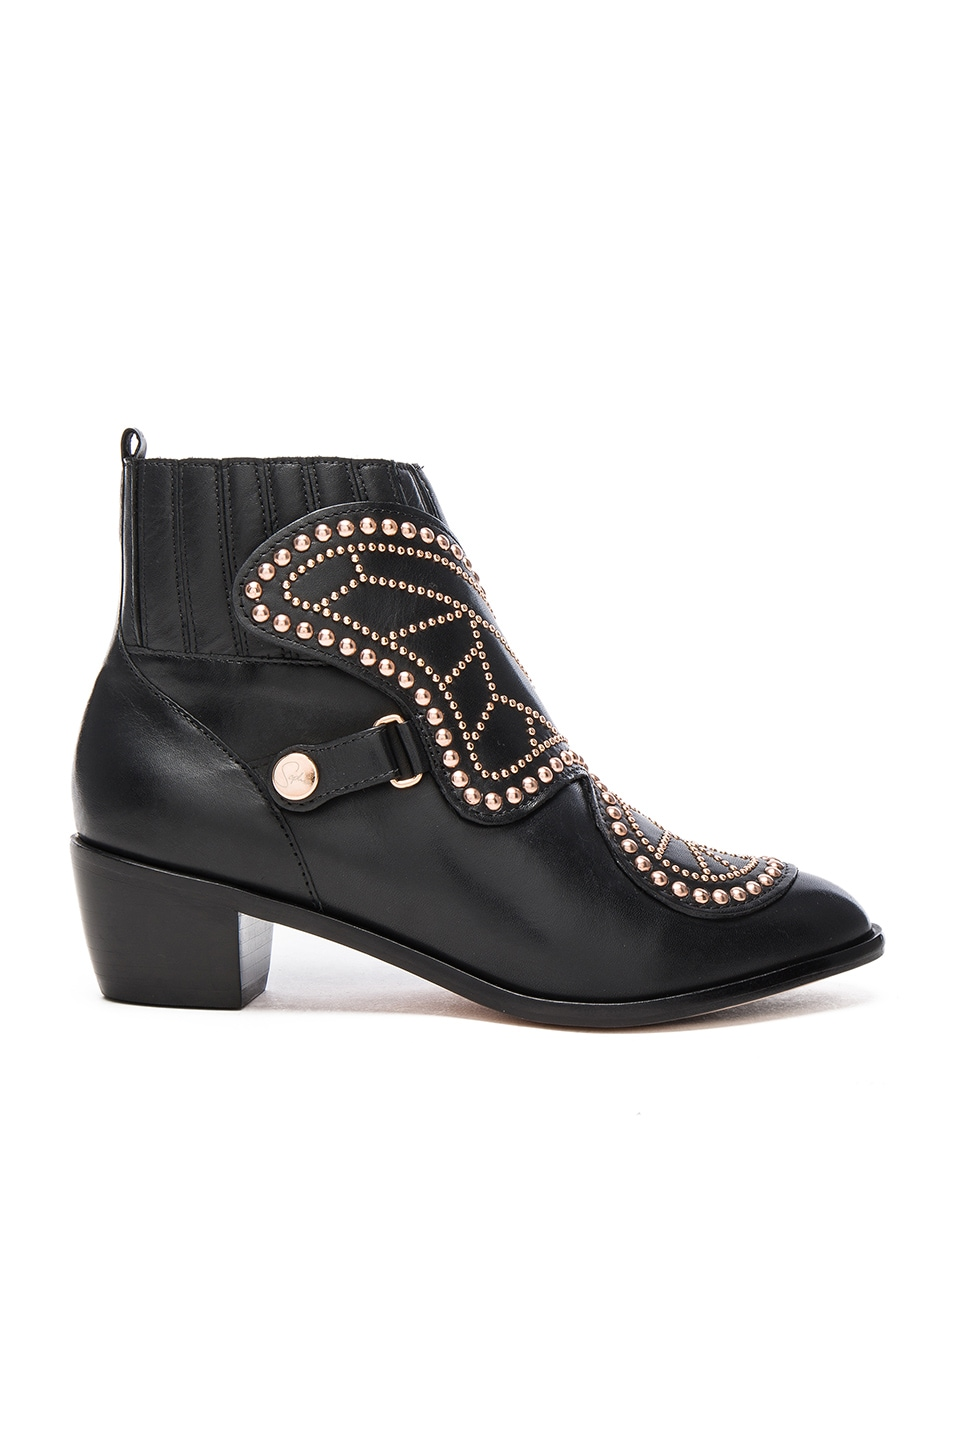 Image 2 of Sophia Webster Karina Butterfly Boots in Black